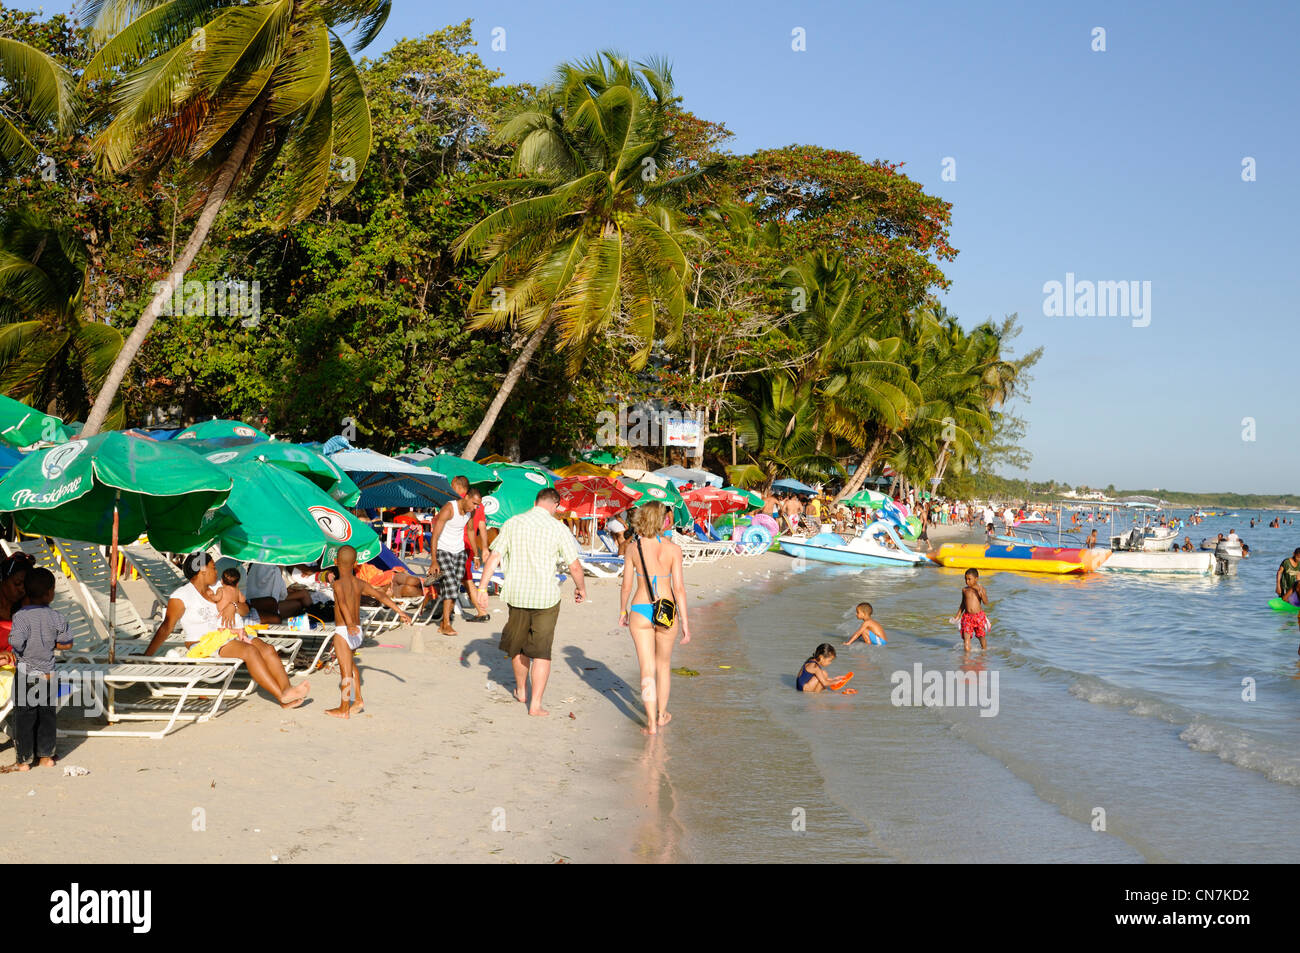 Dominican Republic Santo Domingo province Boca Chica tourists and